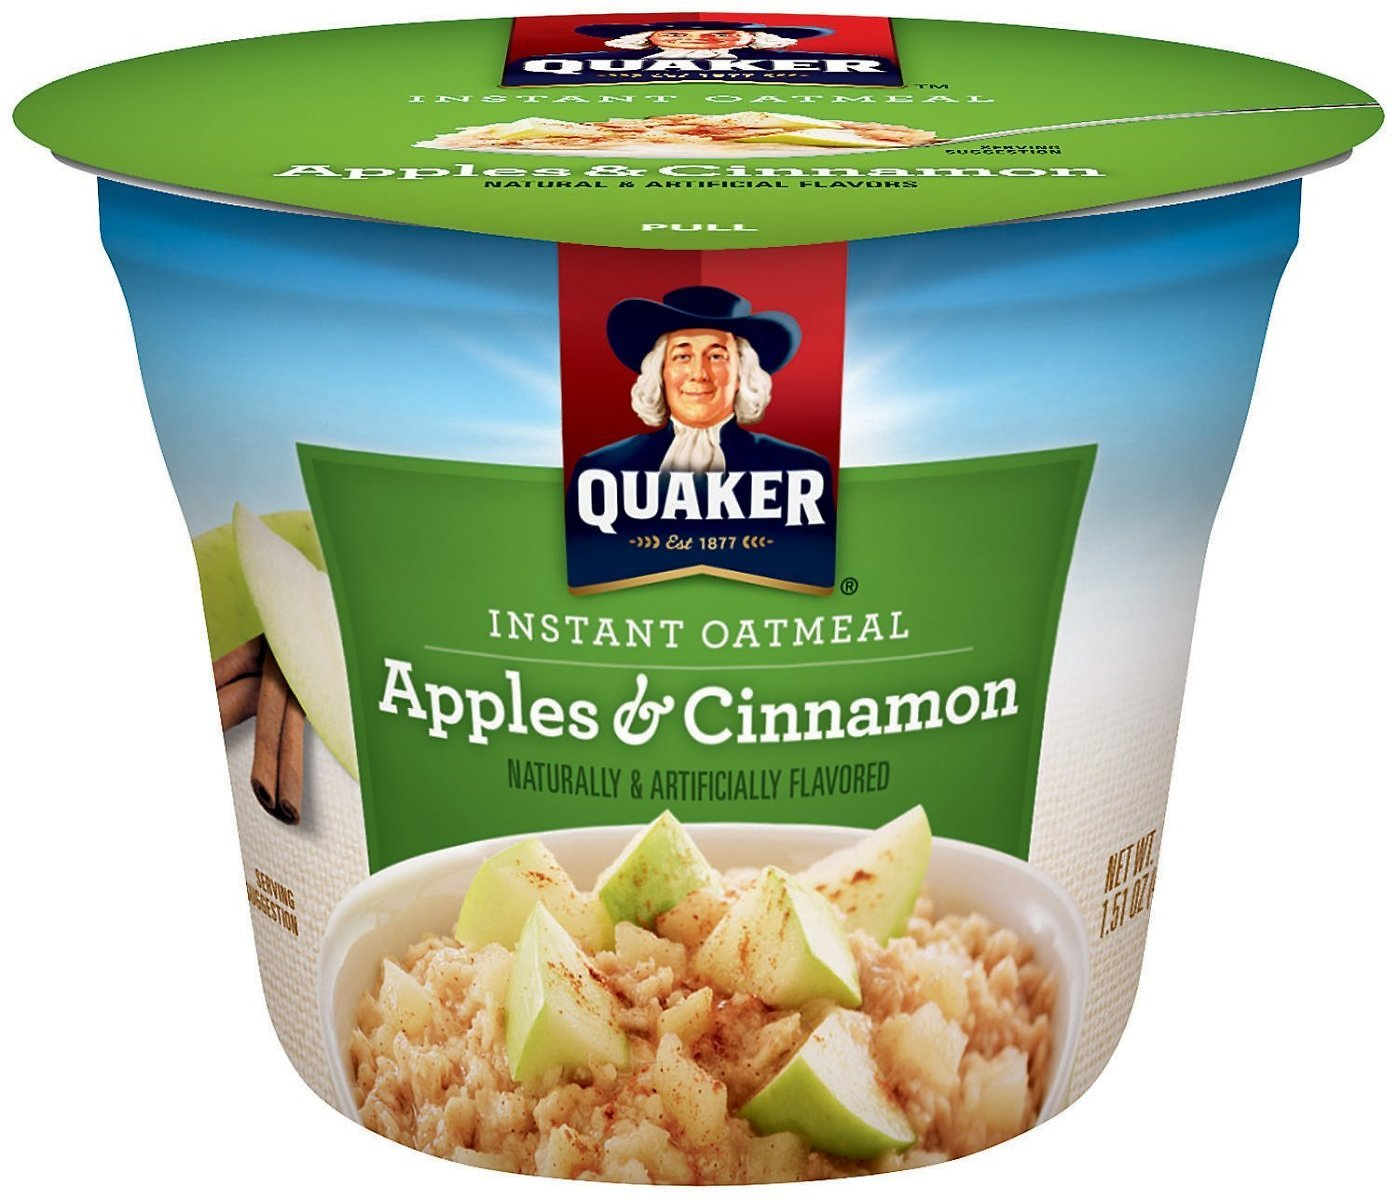 12-Ct Quaker Instant Oatmeal Express Cups